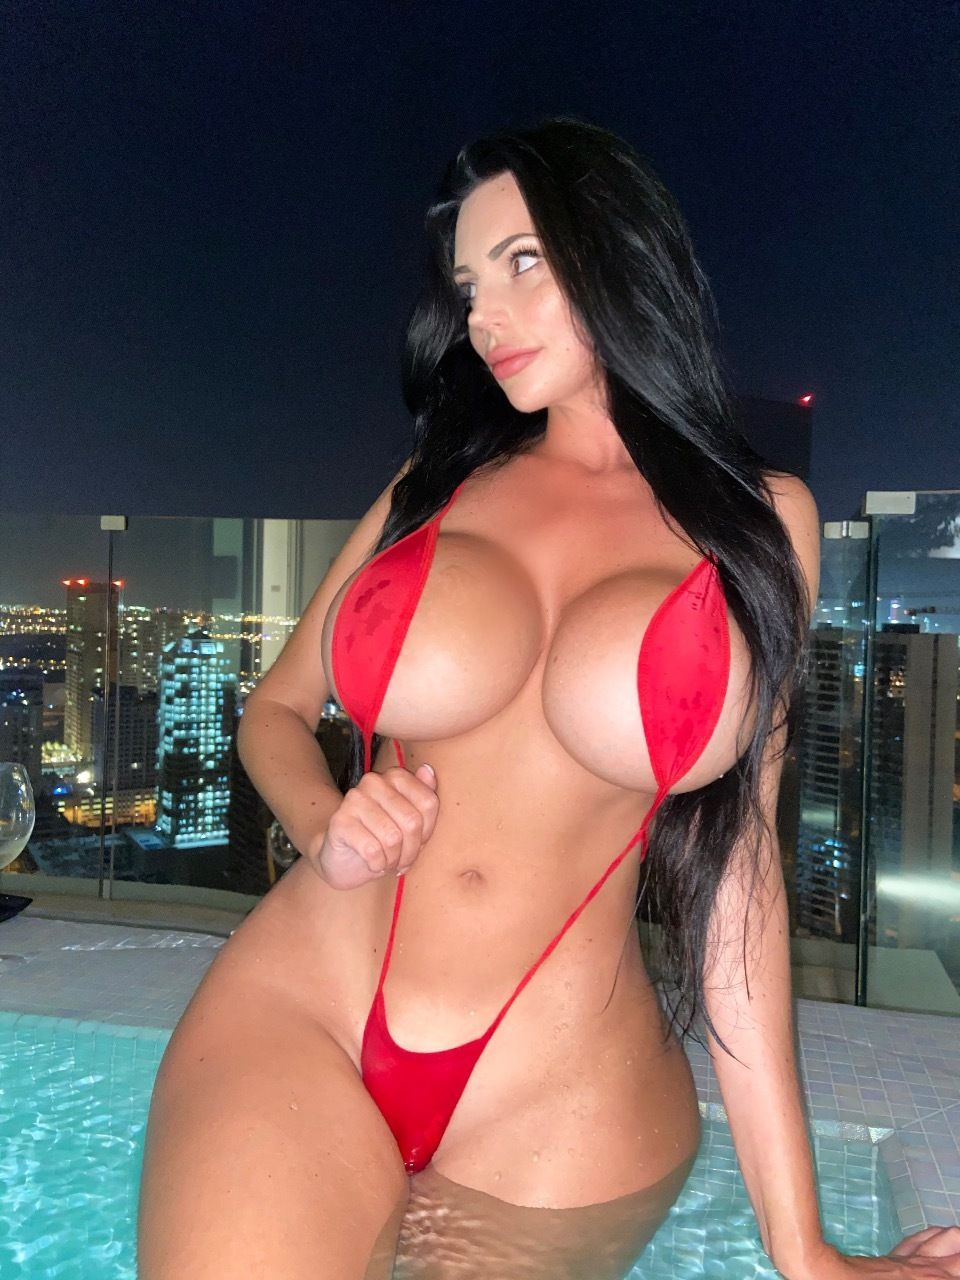 Yvonne Bar photos and videos onlyfans leaked